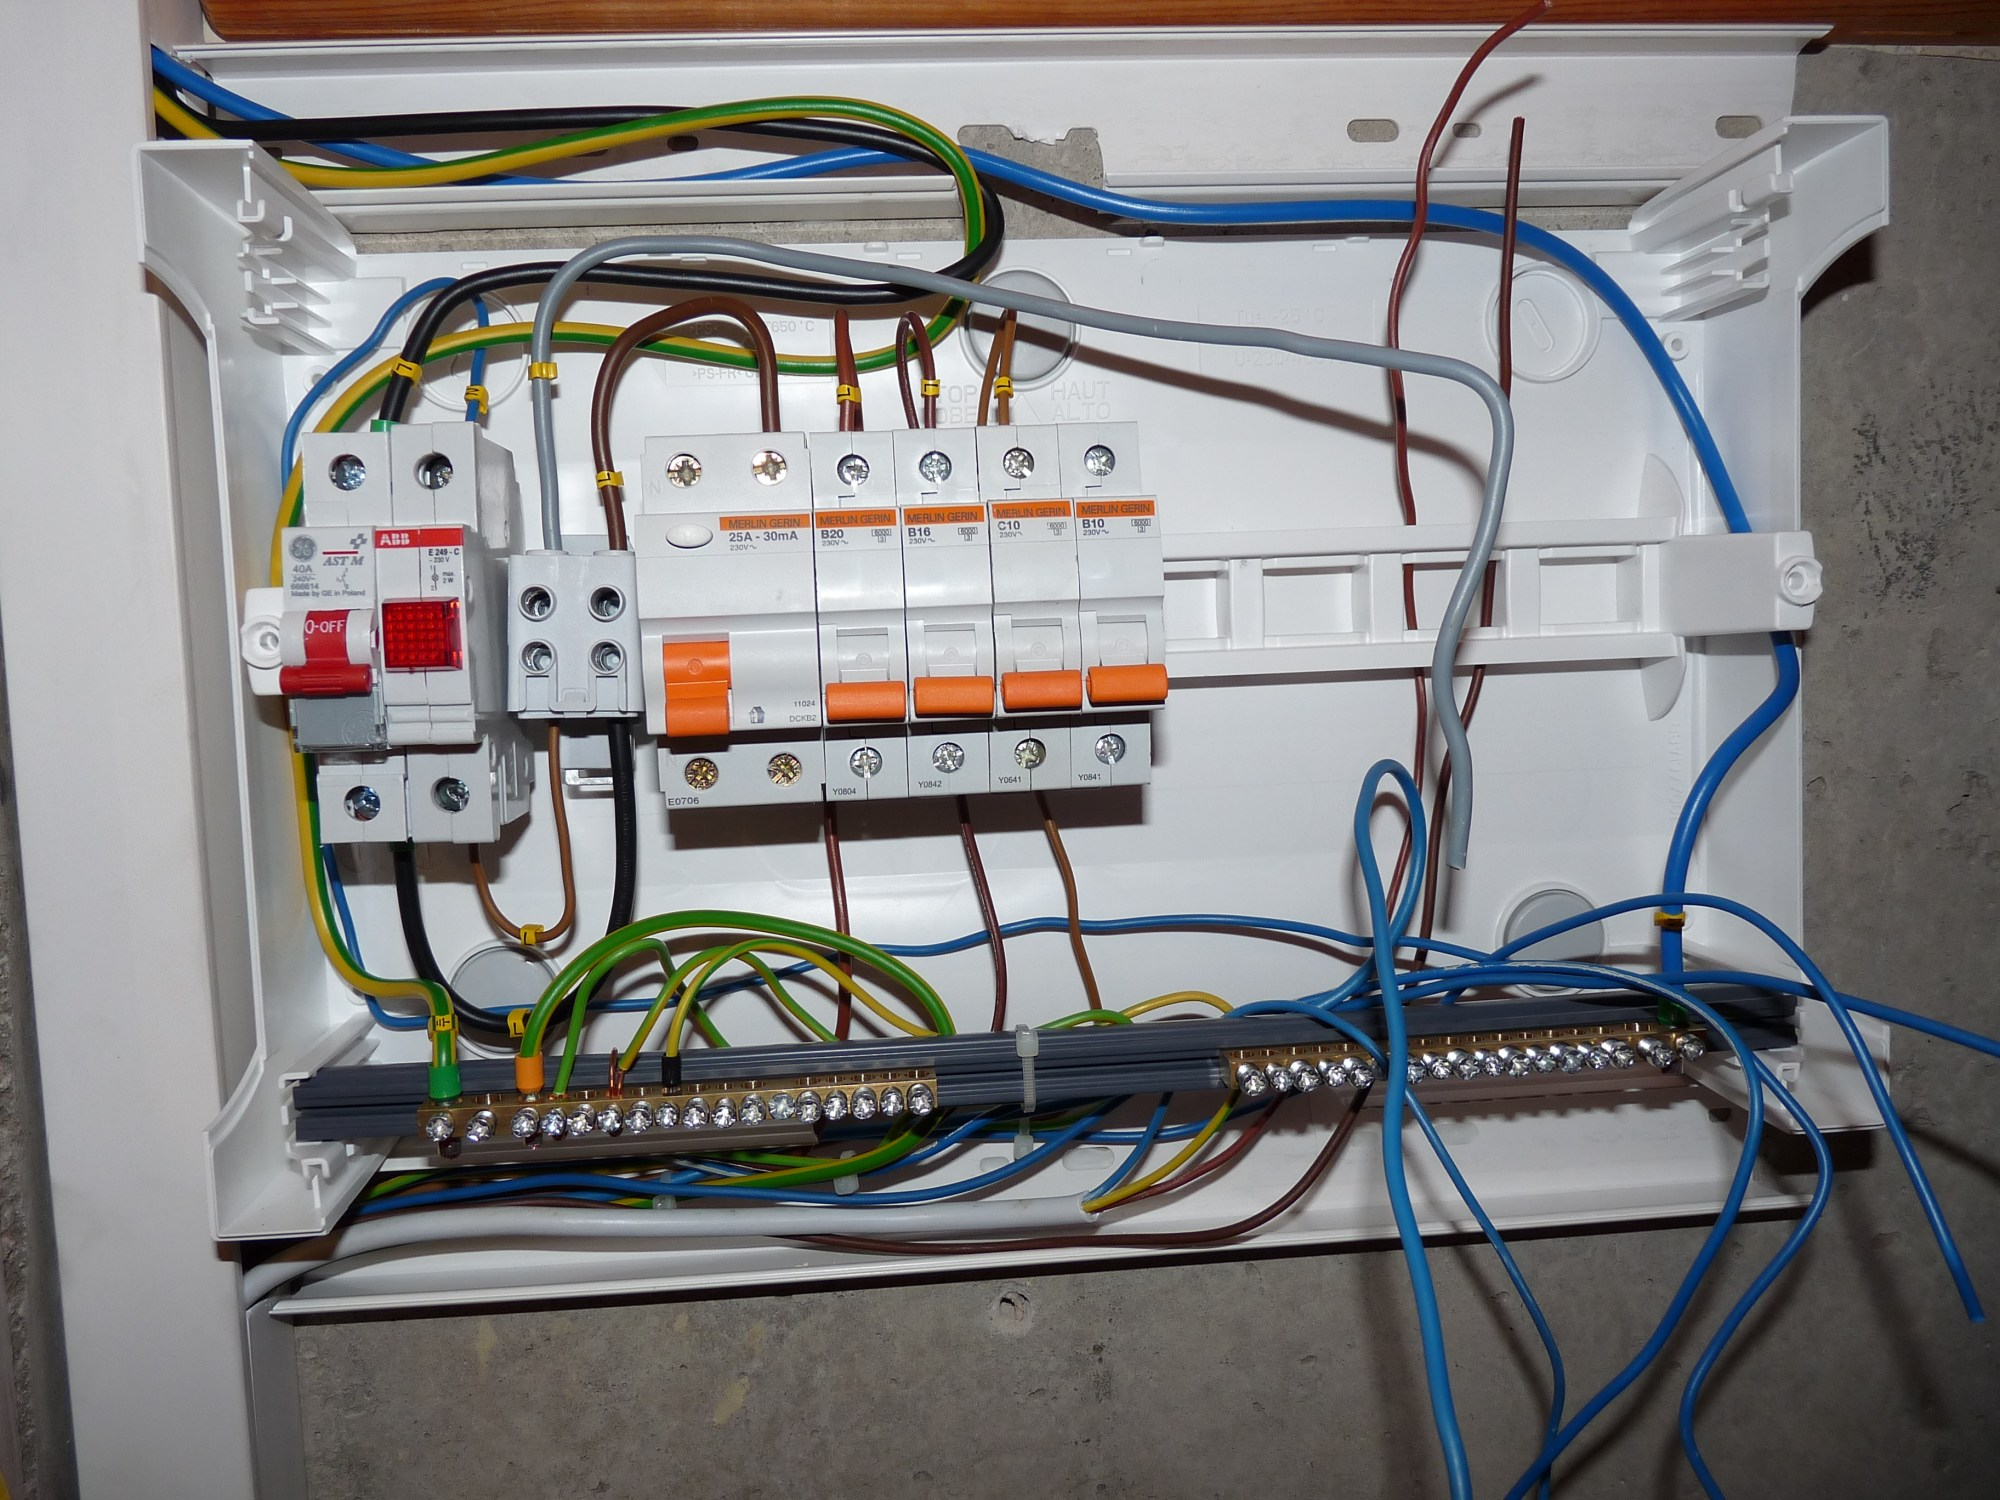 hight resolution of fuse box wiring schema wiring diagramfuse box wiring